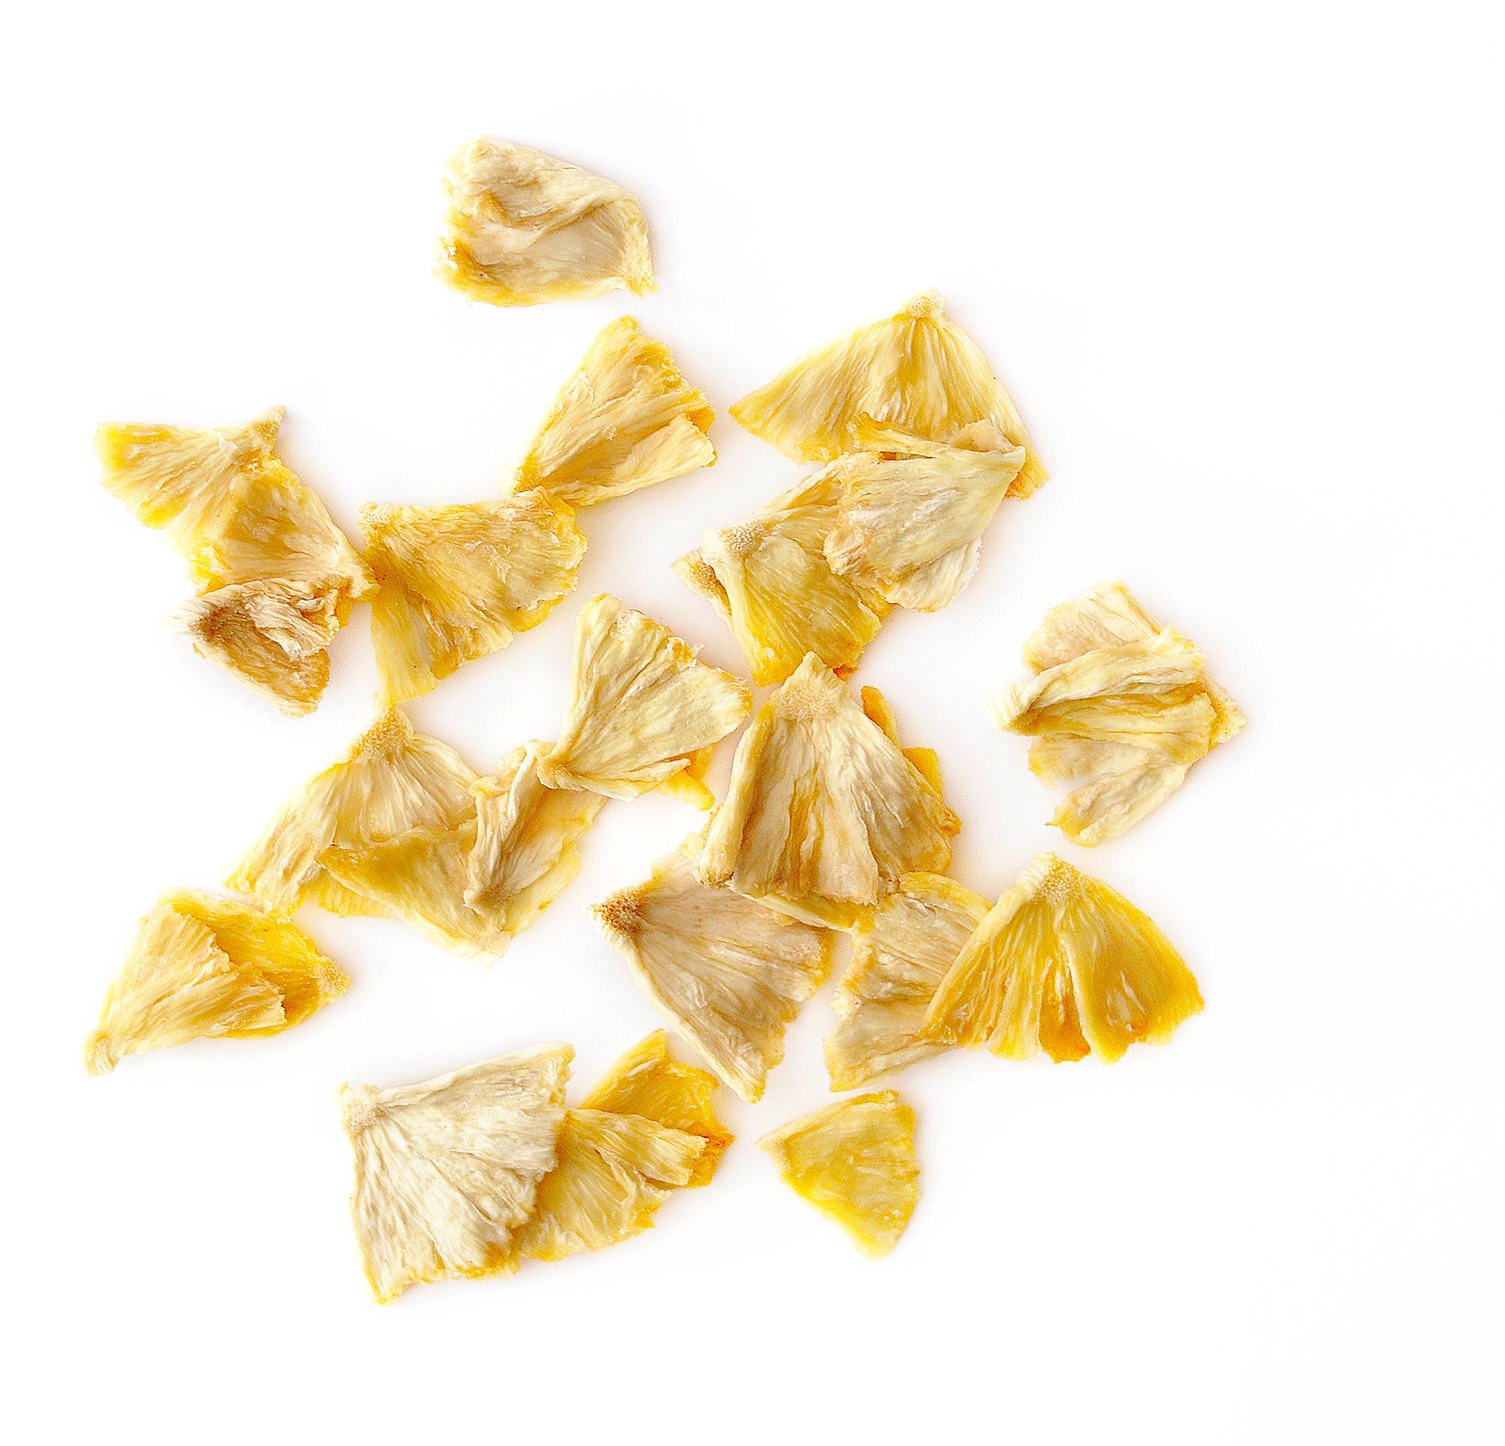 Healthy dried pineapple pieces spread out on a white background